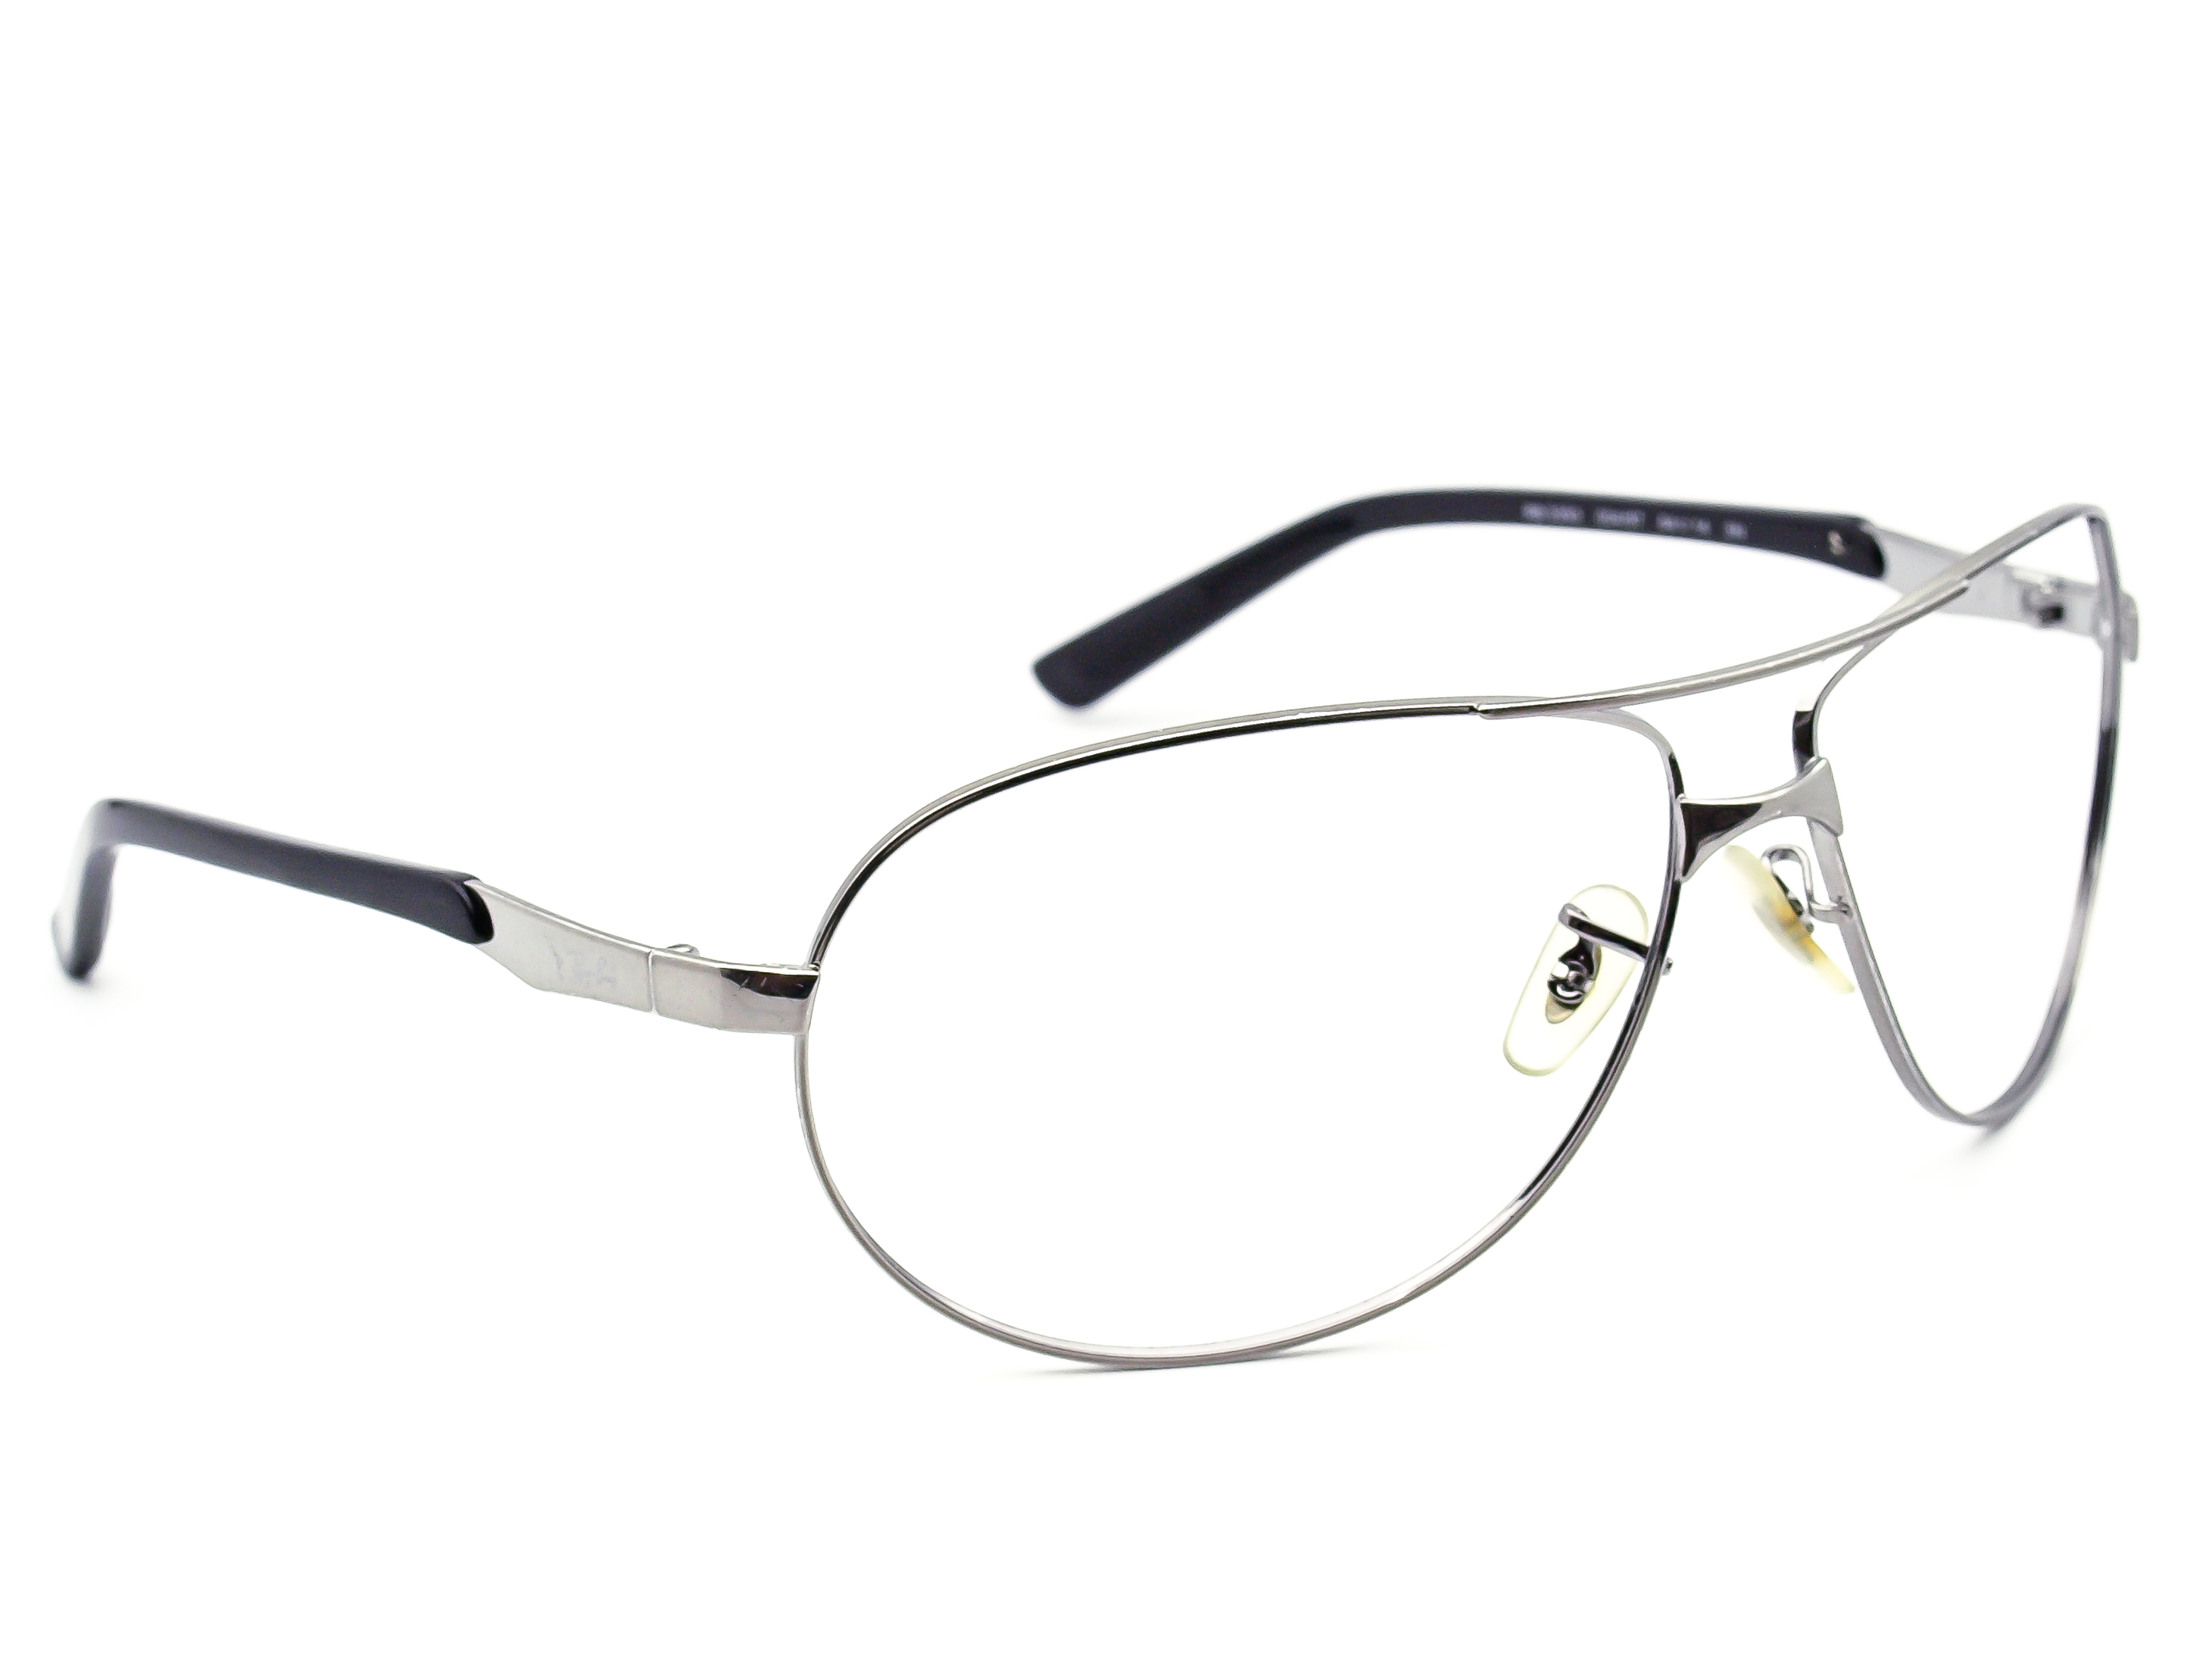 Ray Ban RB 3393 004/87 Sunglasses Frame Only